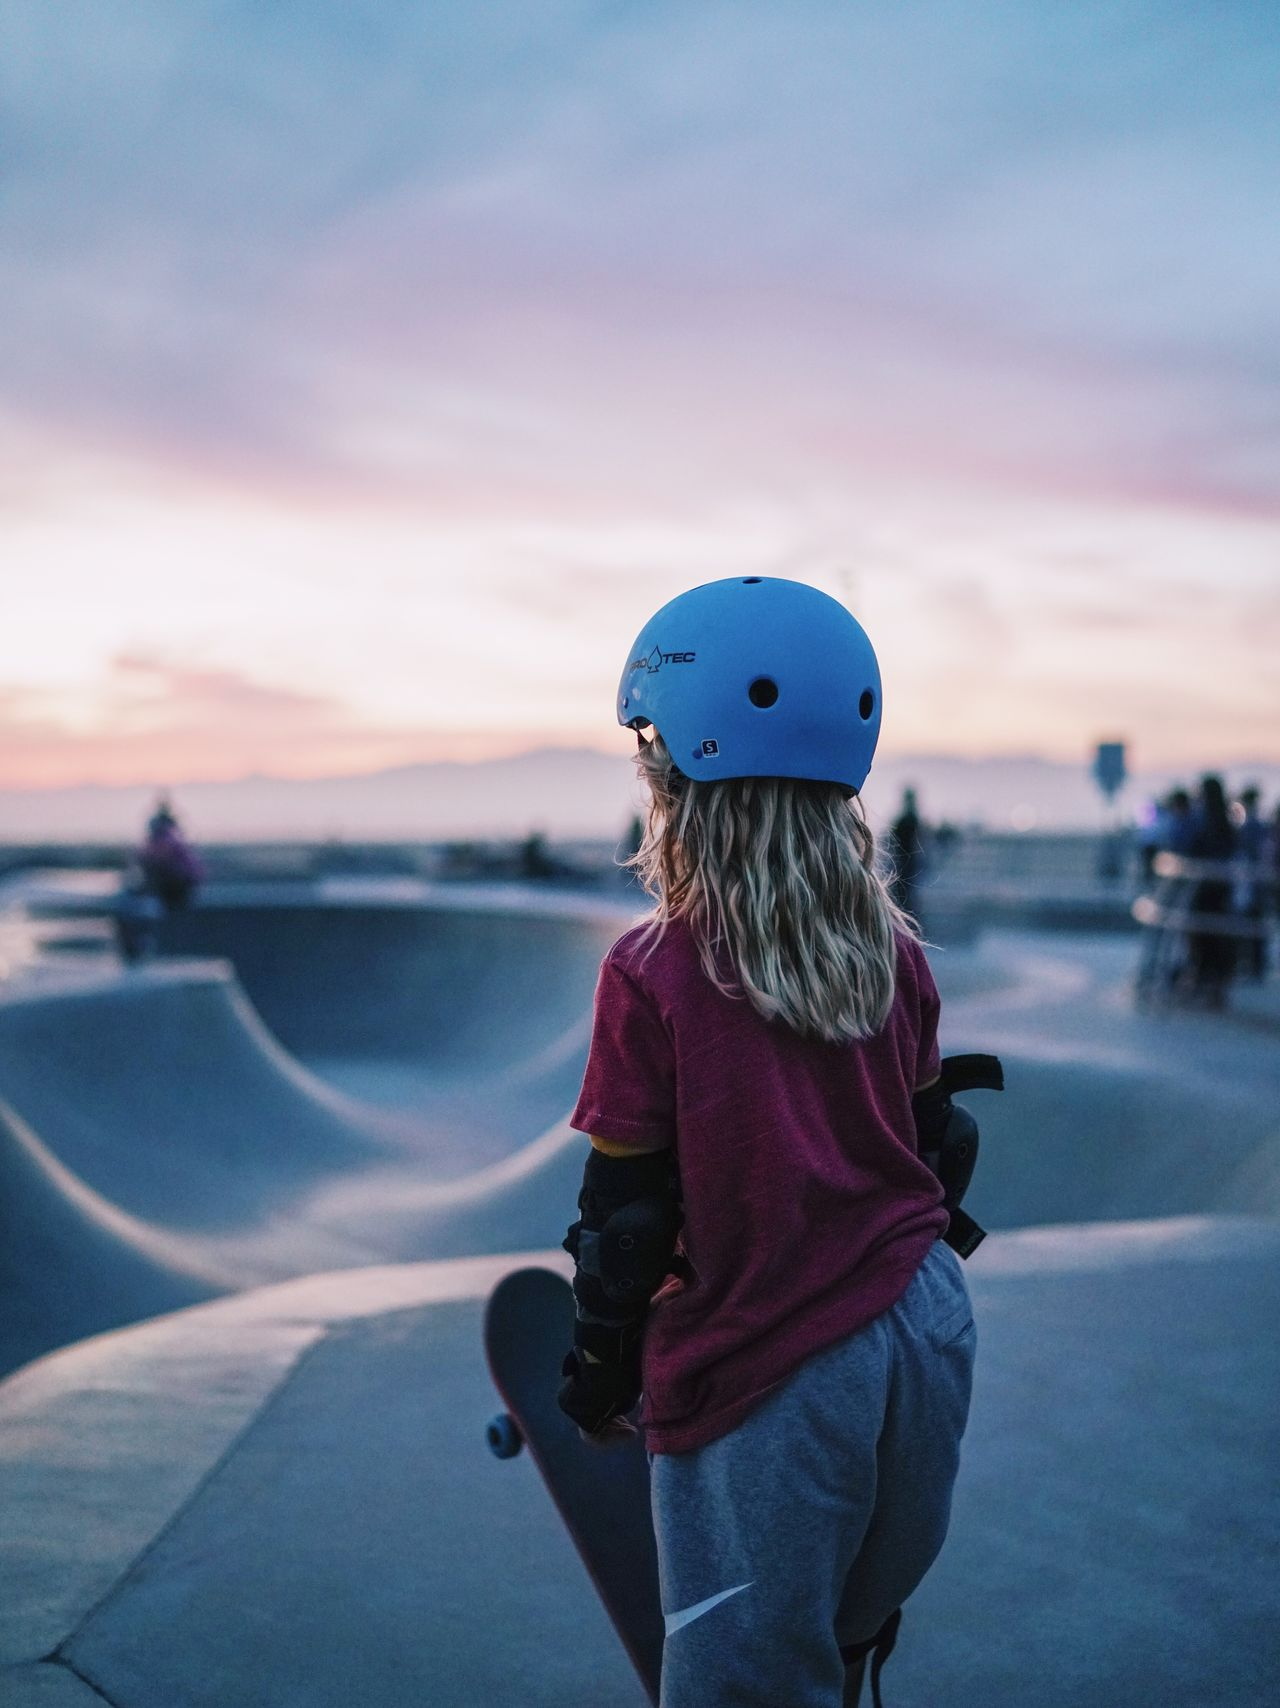 Sunset California California Love California Dreaming California Sunset WestCoast Skater Skateboarding Skatepark Skate Life Skatergirl Kids Kids Playing Youth Of Today Helmet Venice Beach Outdoors